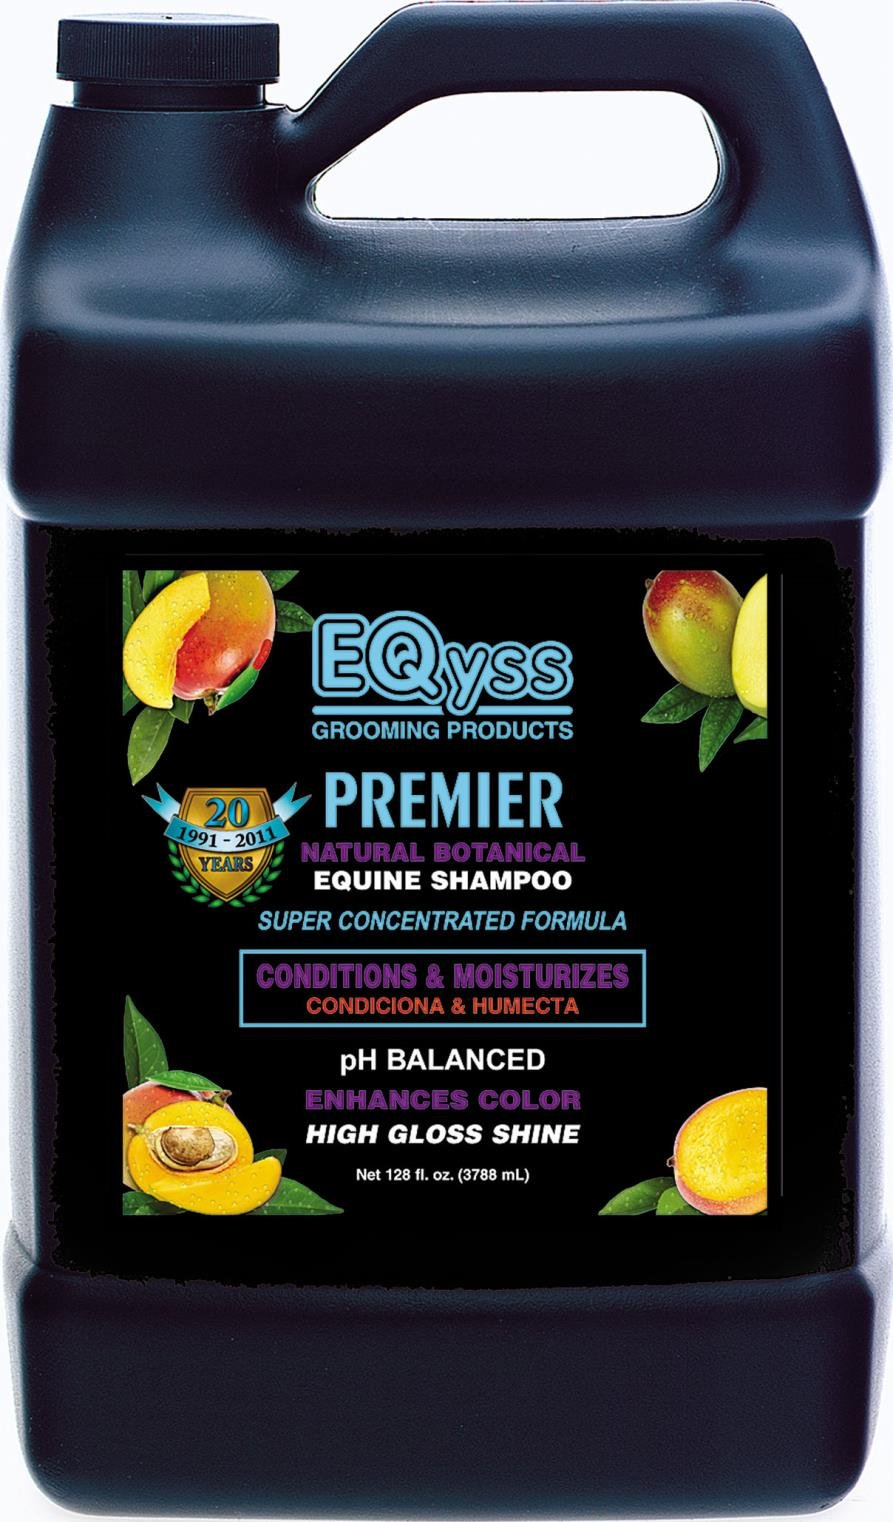 PREMIER NATURAL BOTANICAL EQUINE SHAMPOO - 1 GALLON